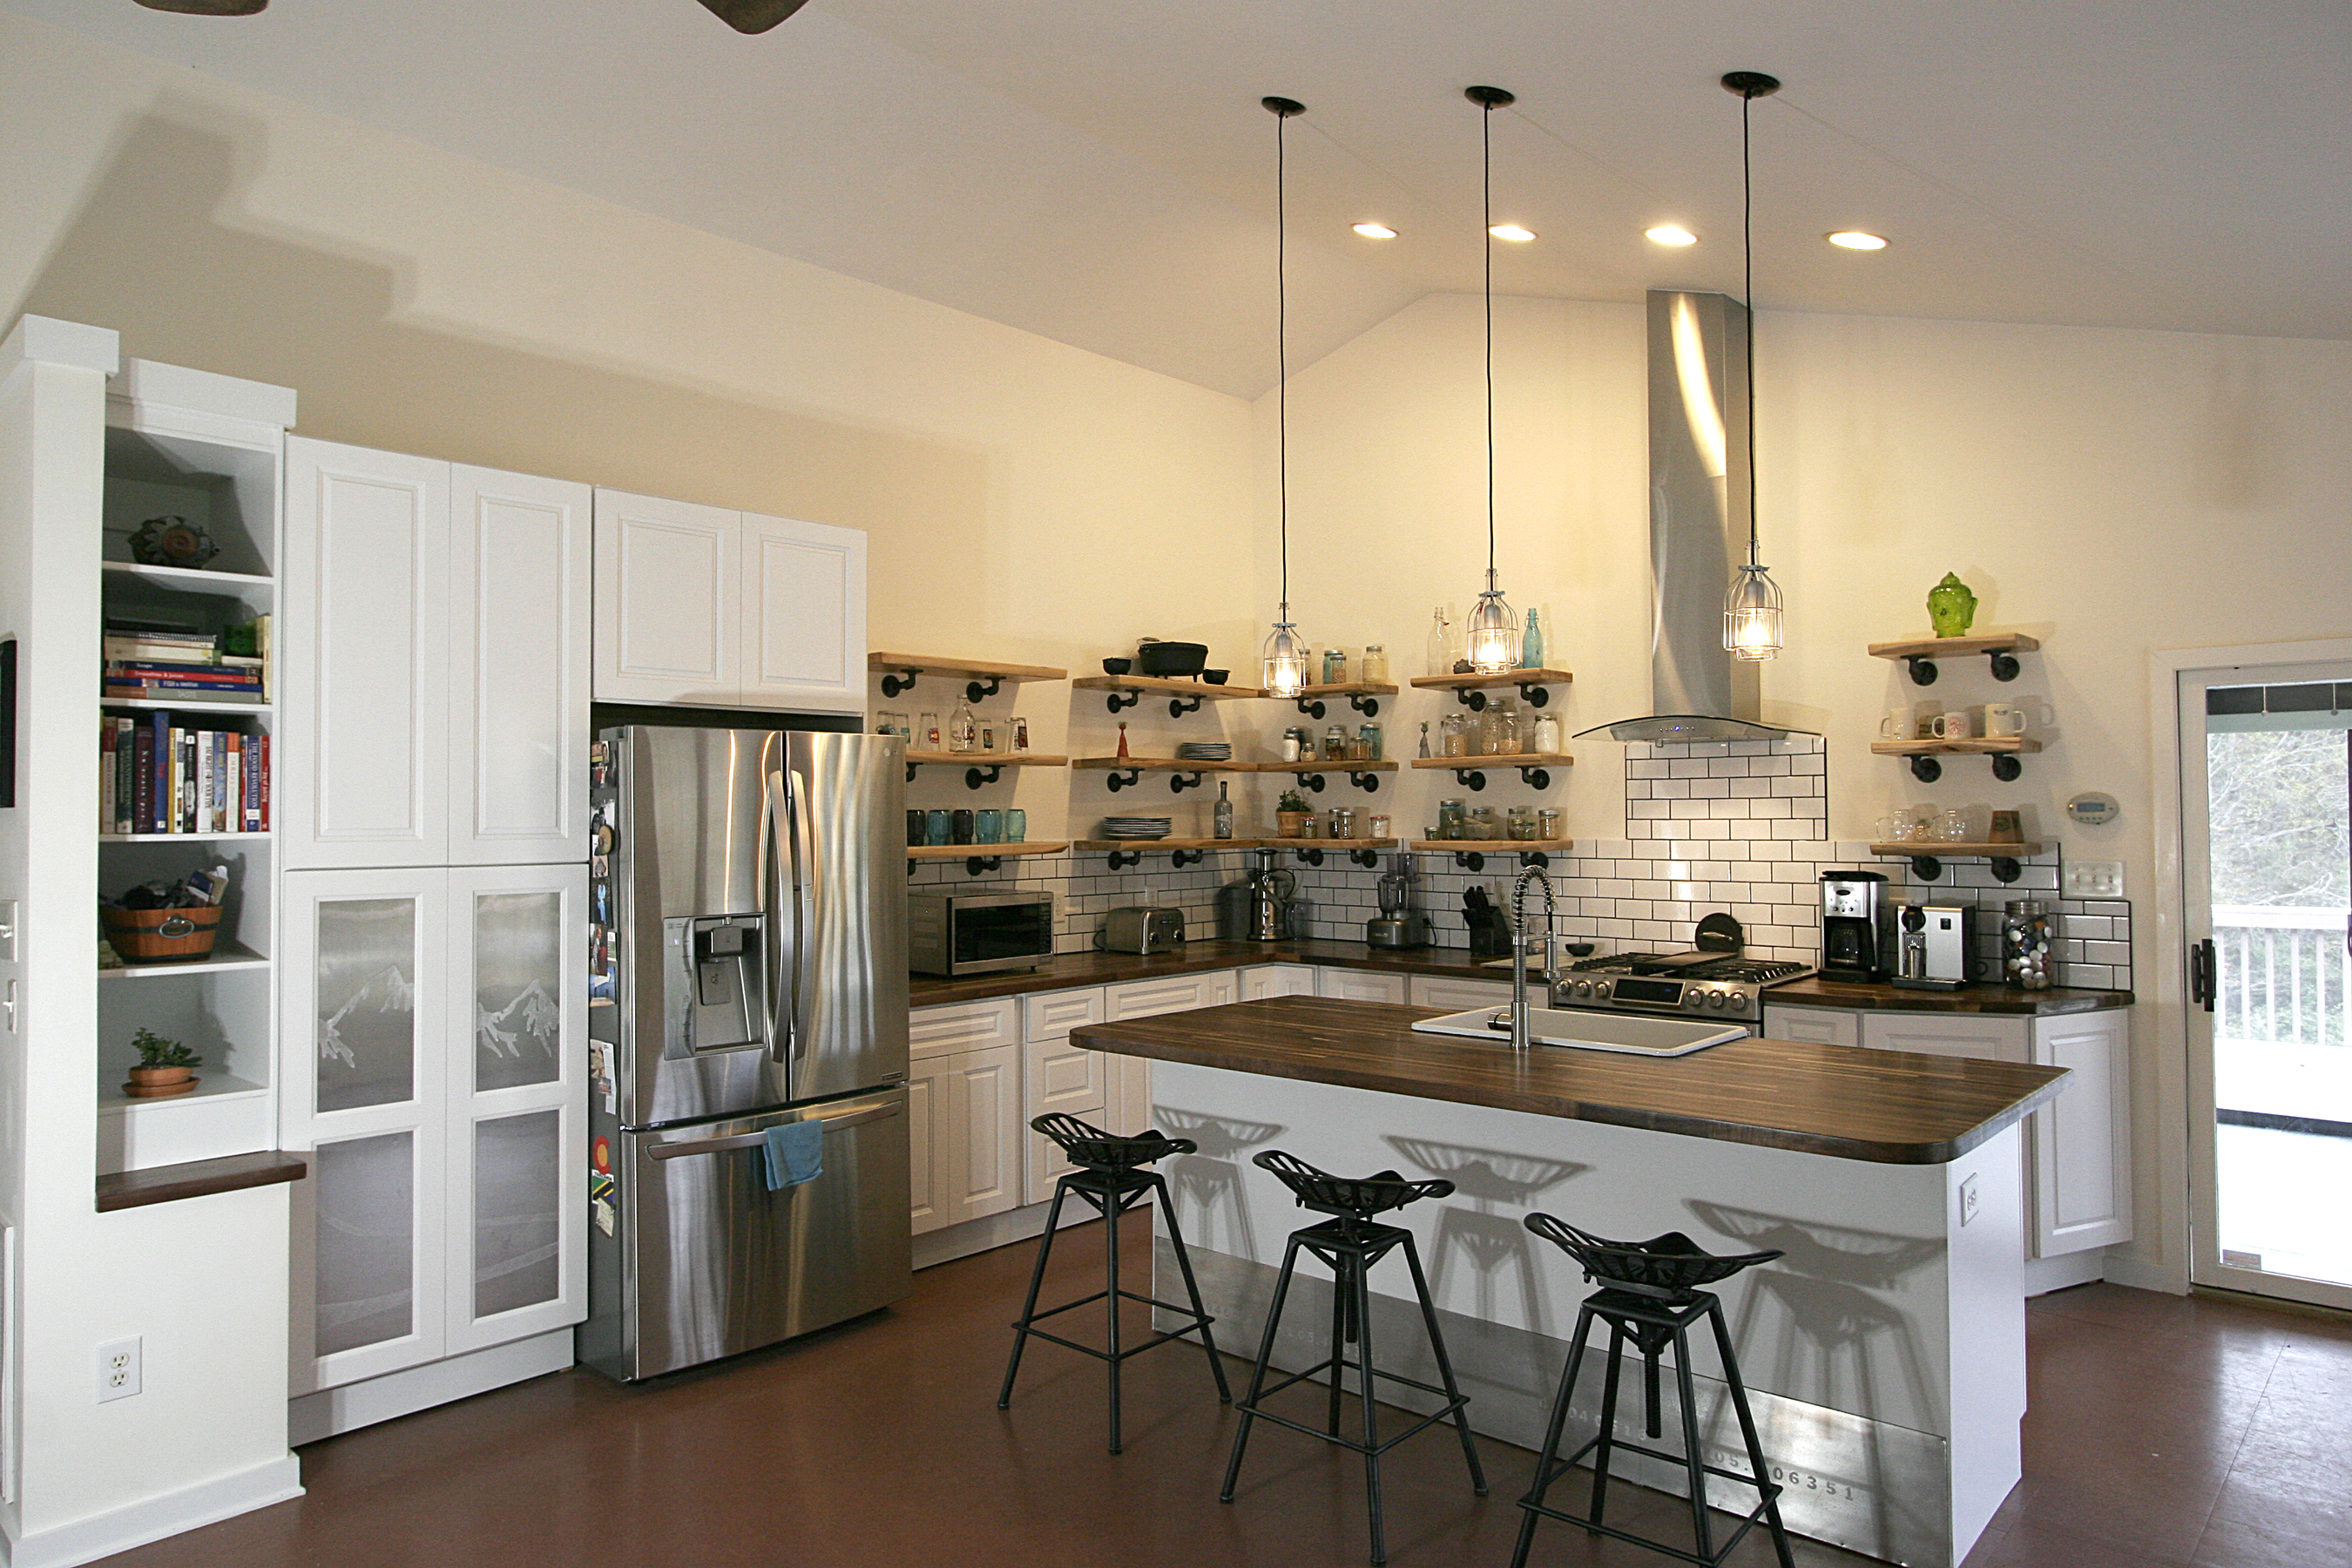 Open Concept Kitchen With Natural Elements And Industrial Touches